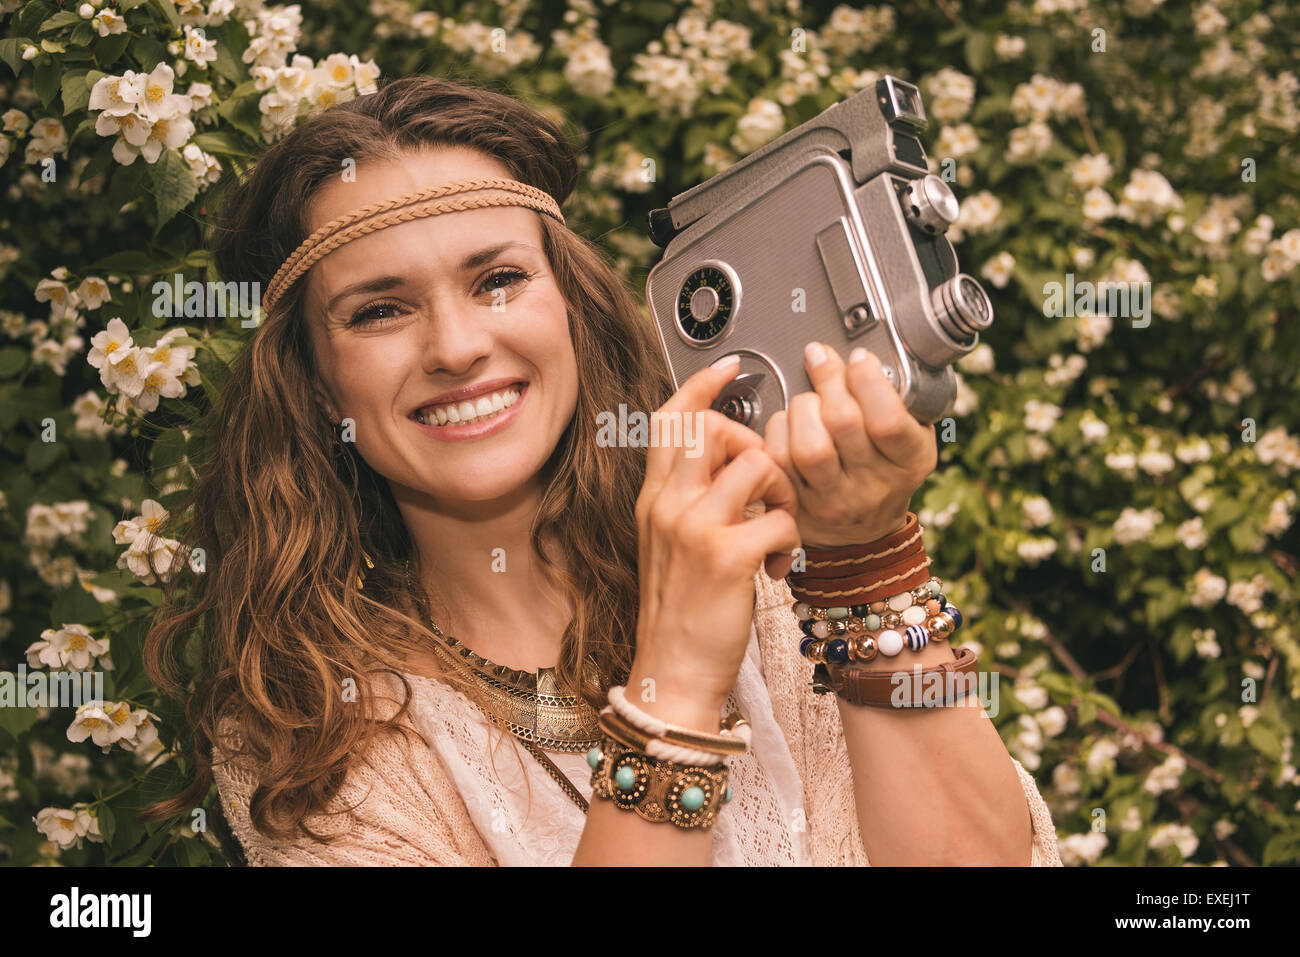 Longhaired hippy-looking young lady in knitted shawl and white blouse standing among flowers with retro camera Stock Photo